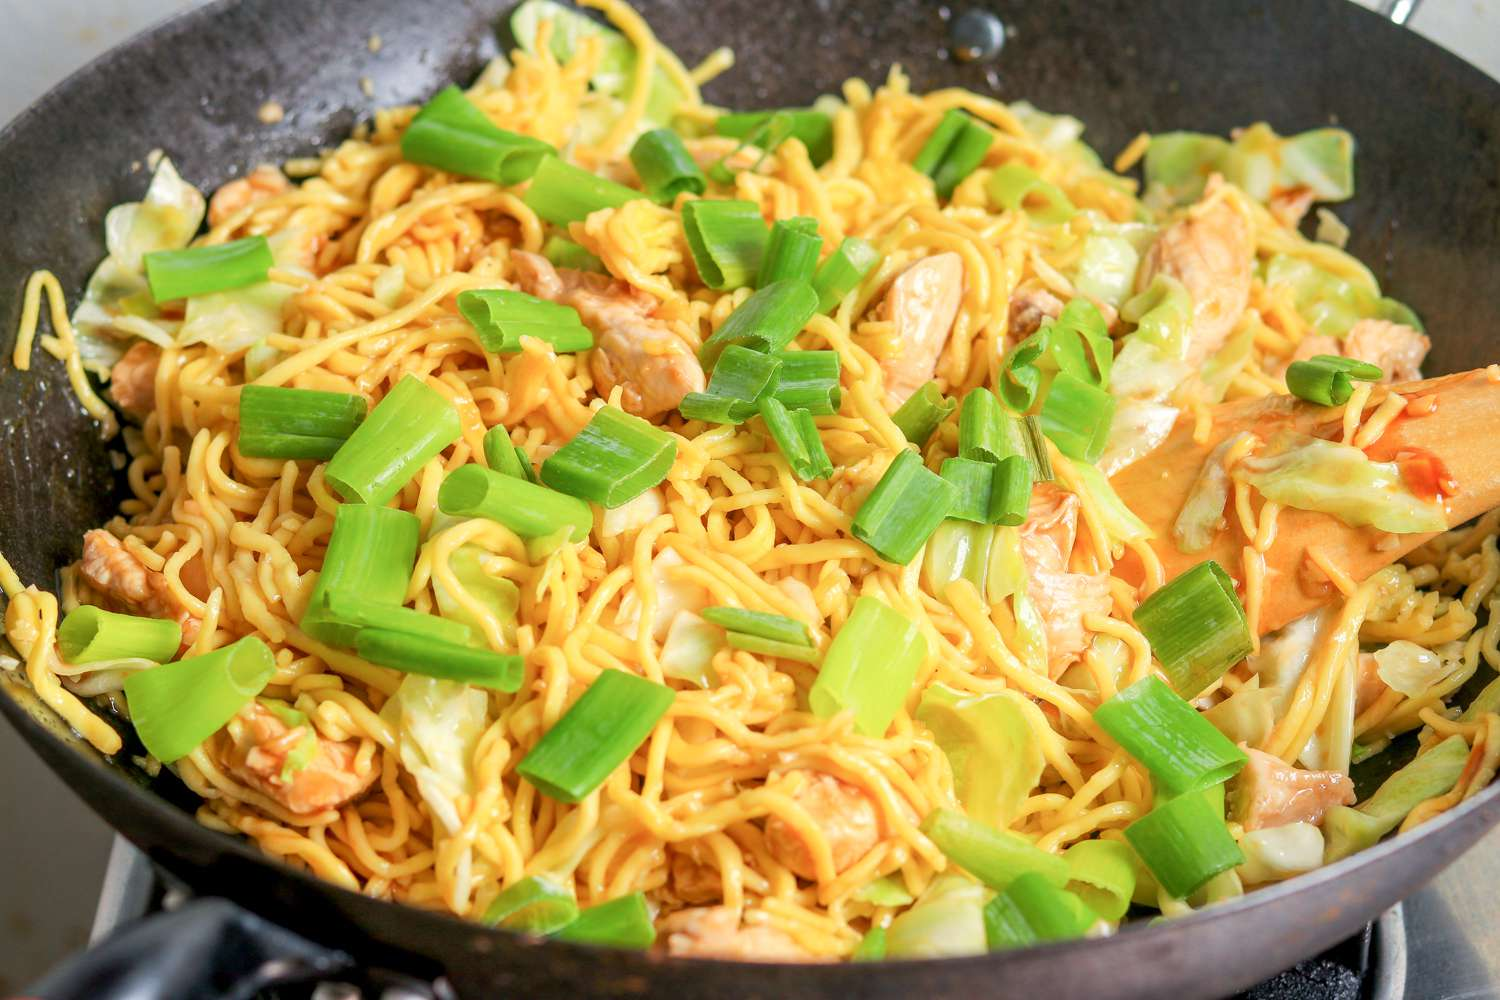 Shanghai stir fried noodles with spring onion